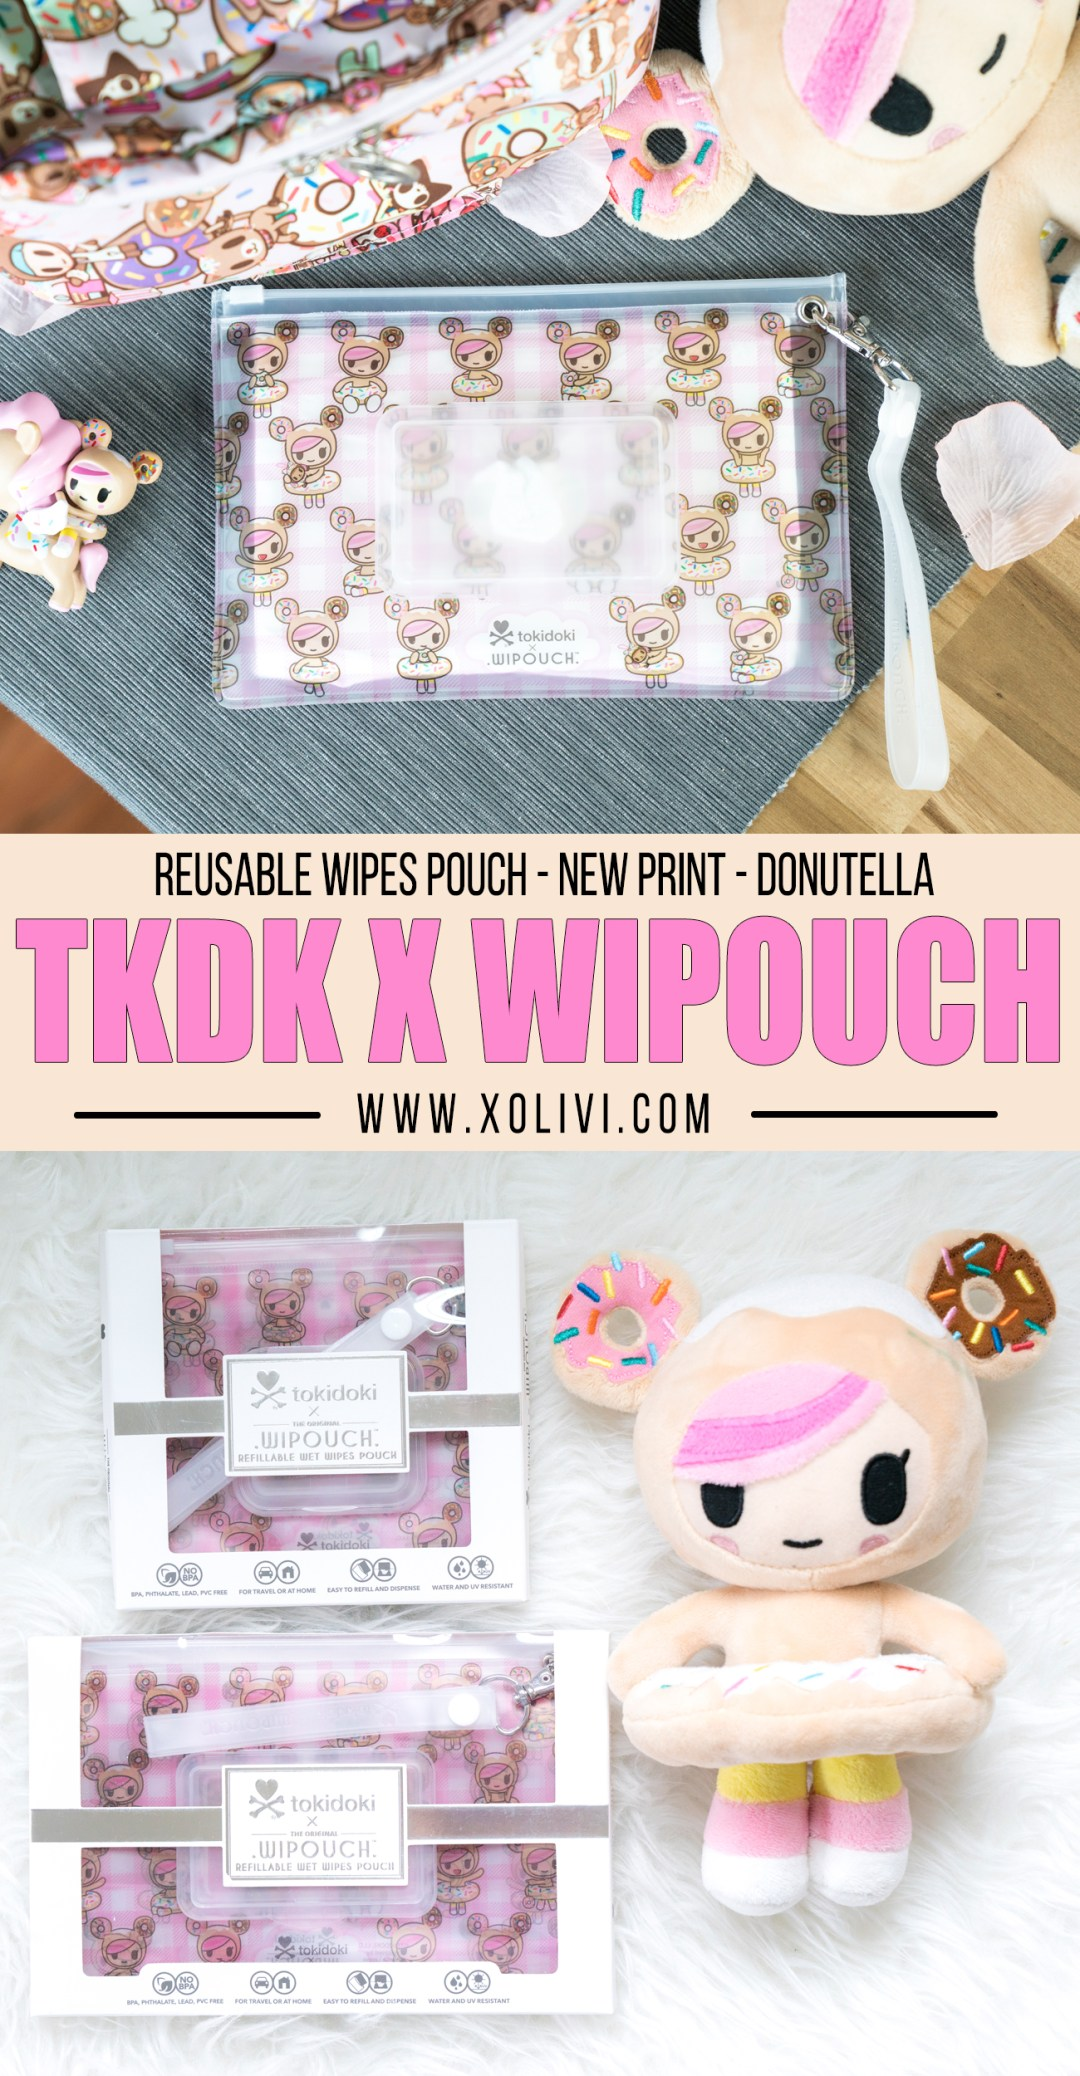 tokidoki wipouch donutella reusable wipes pouch xolivi